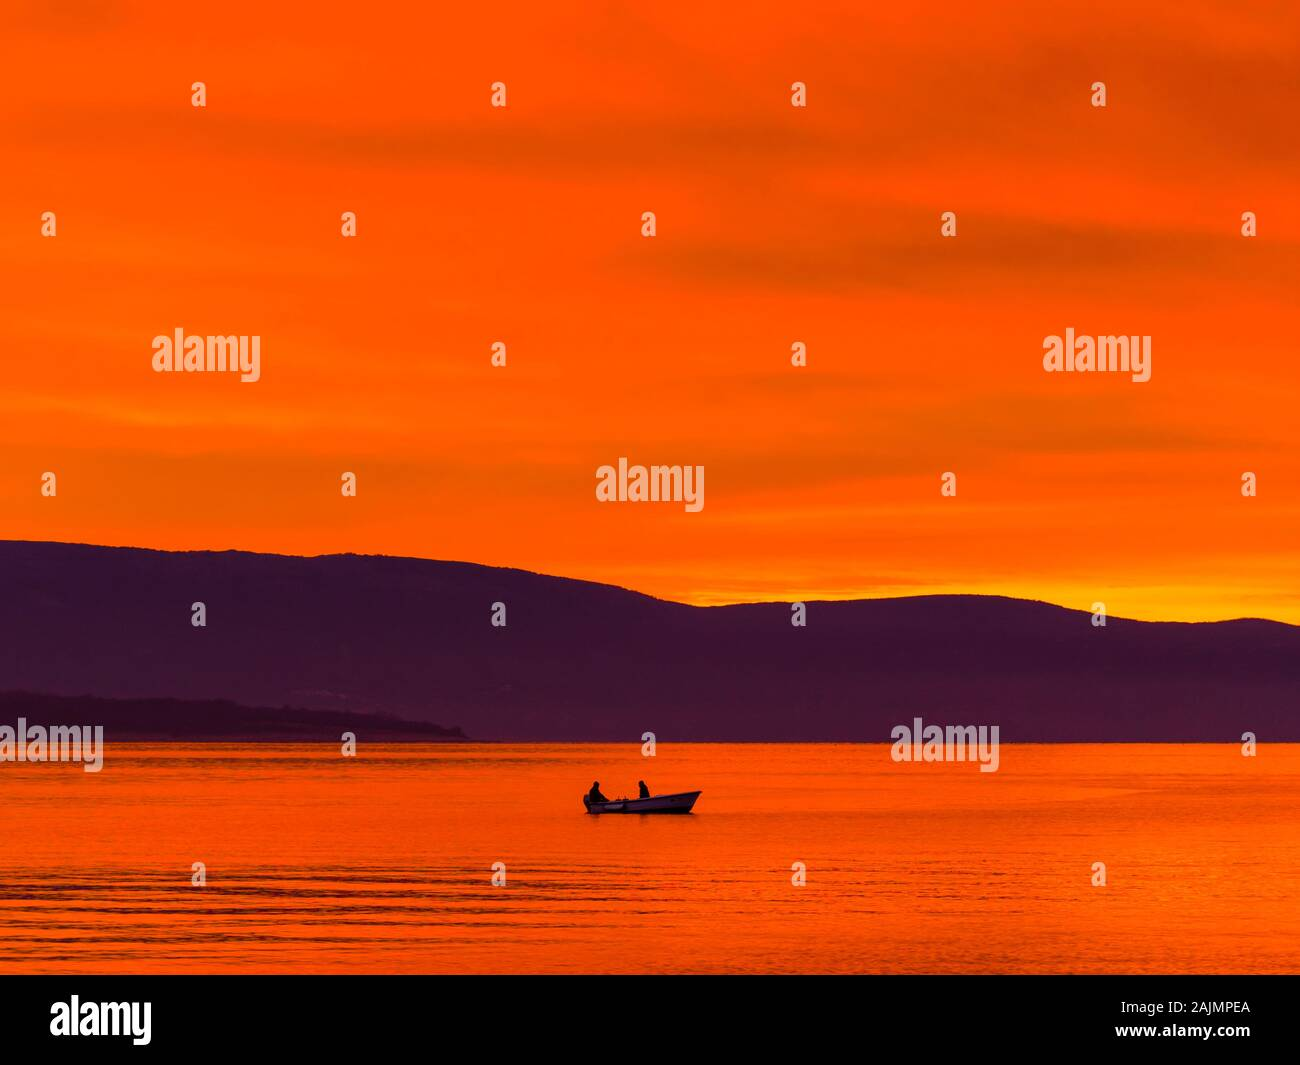 Lonely boat with two fishermen before glorious sunset sea scenery panorama Stock Photo